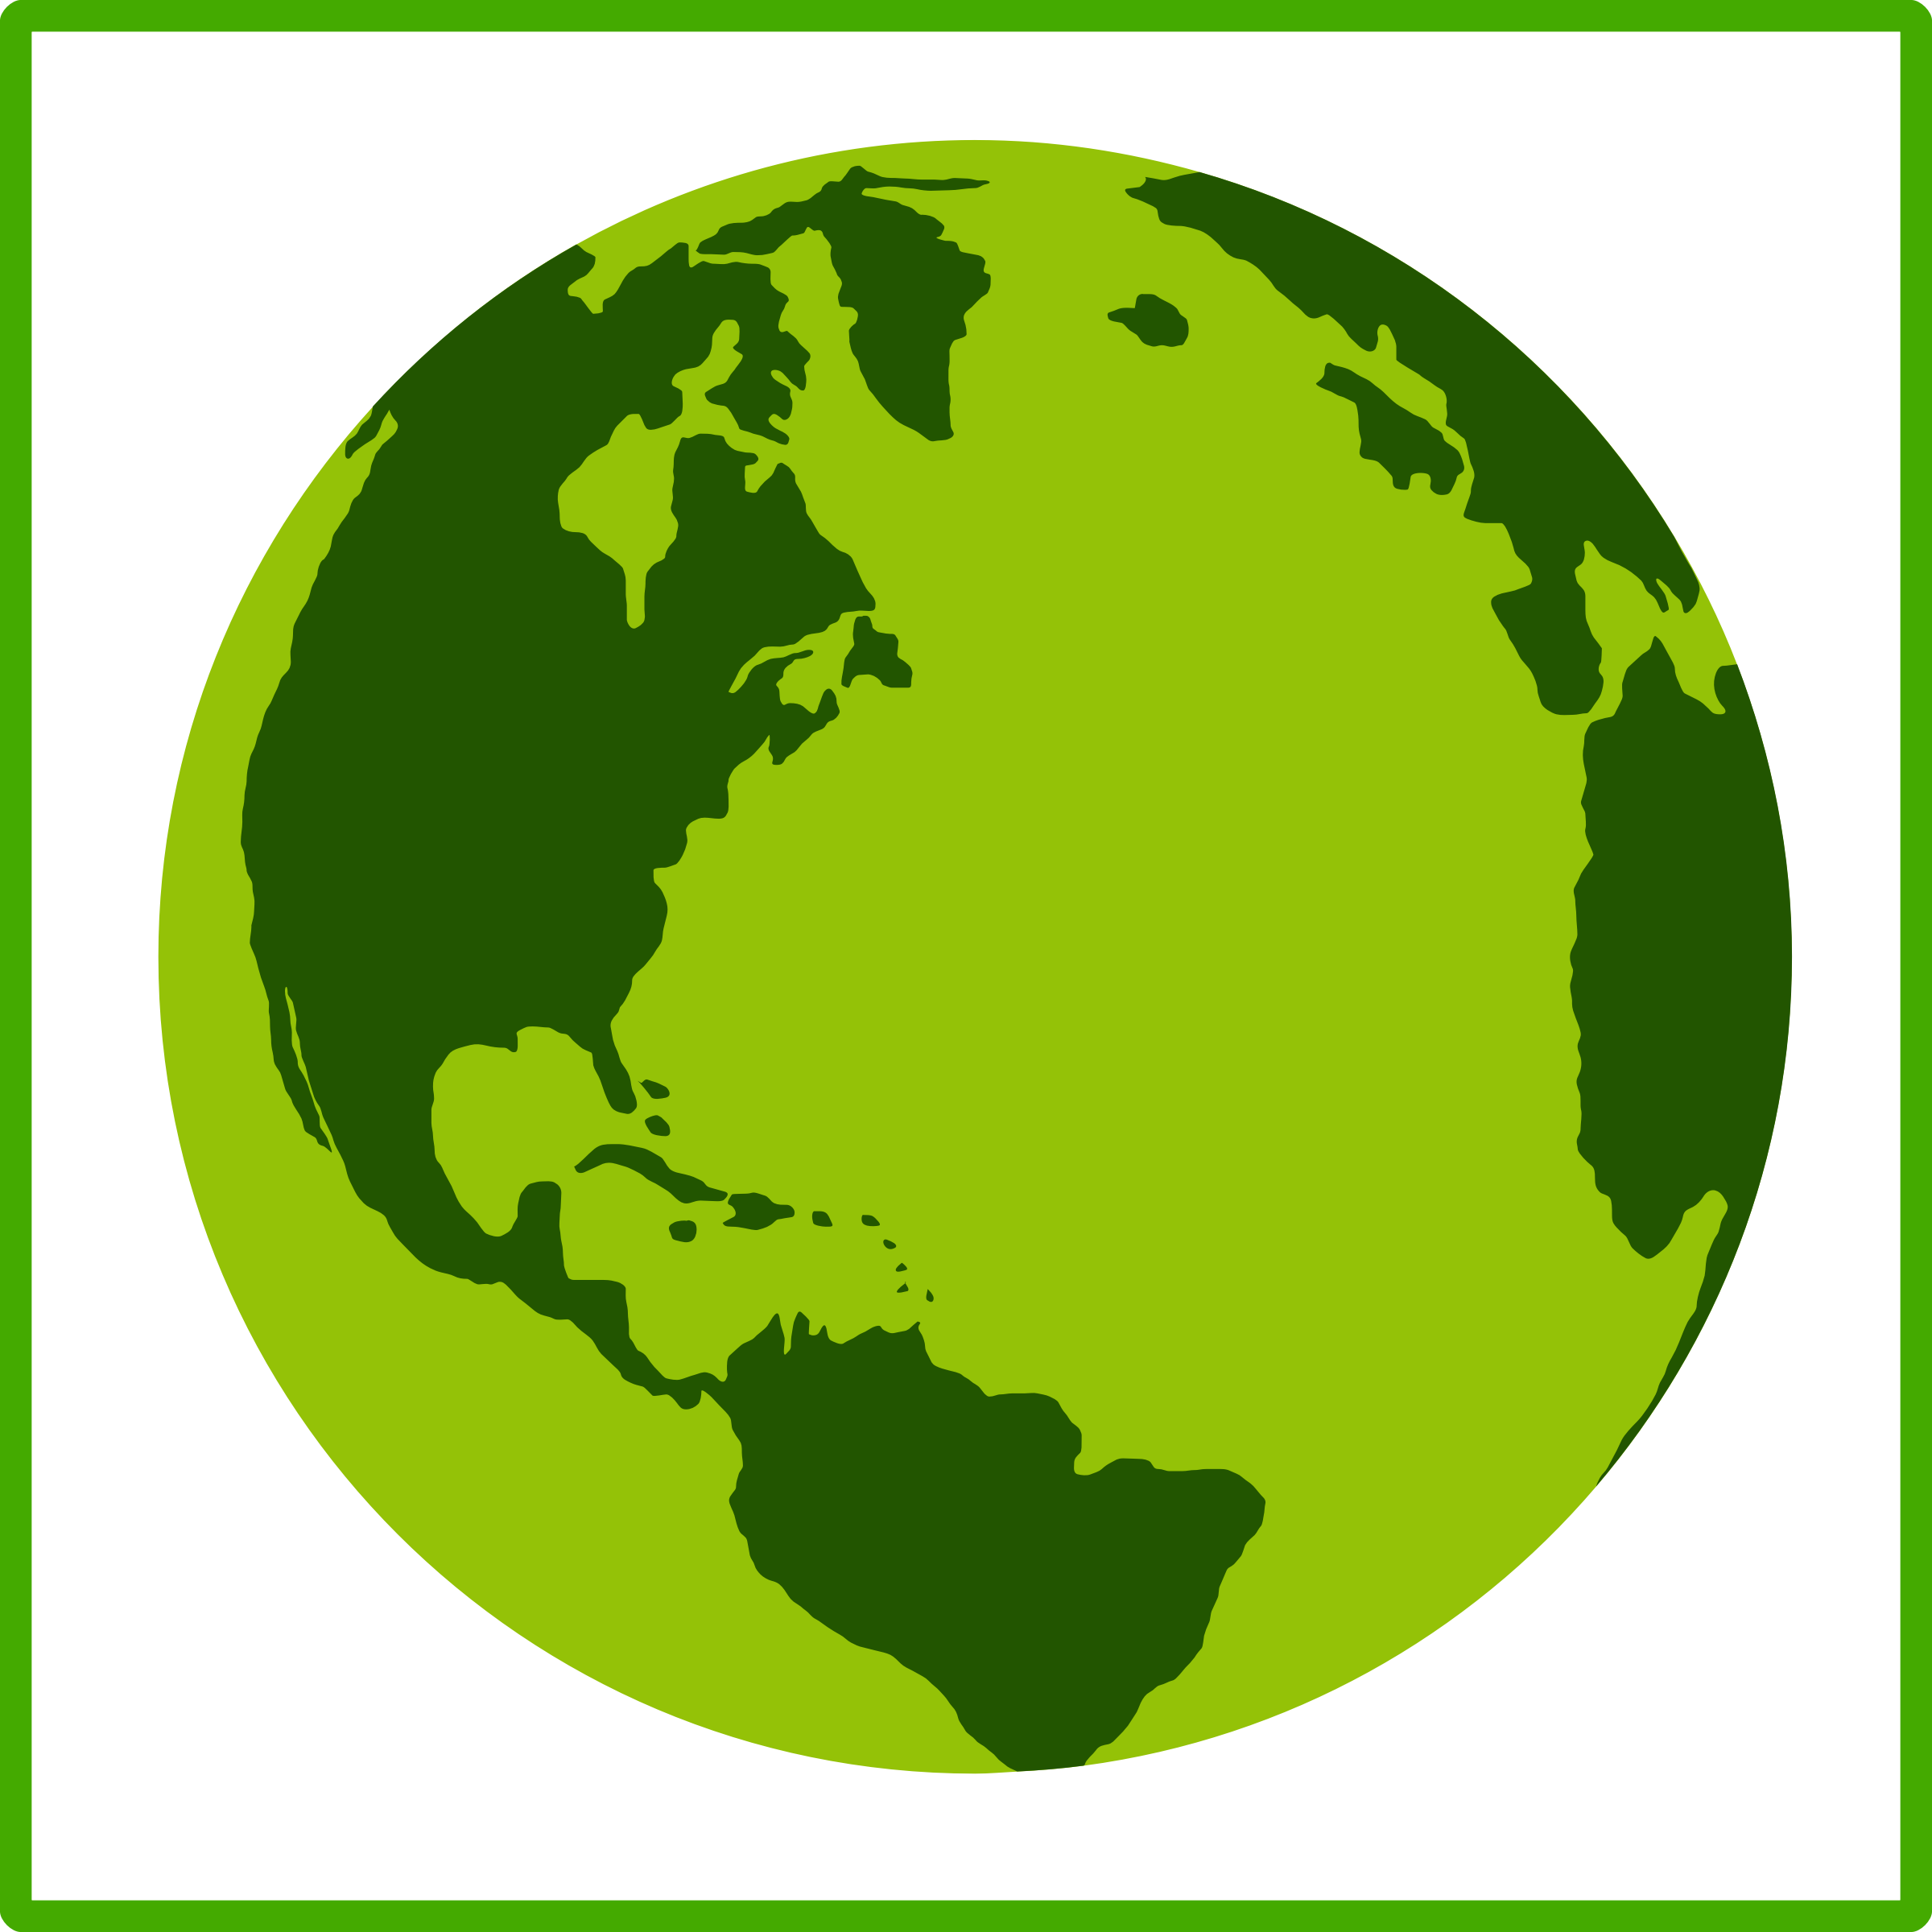 Earth vector png. Clipart eco green icon